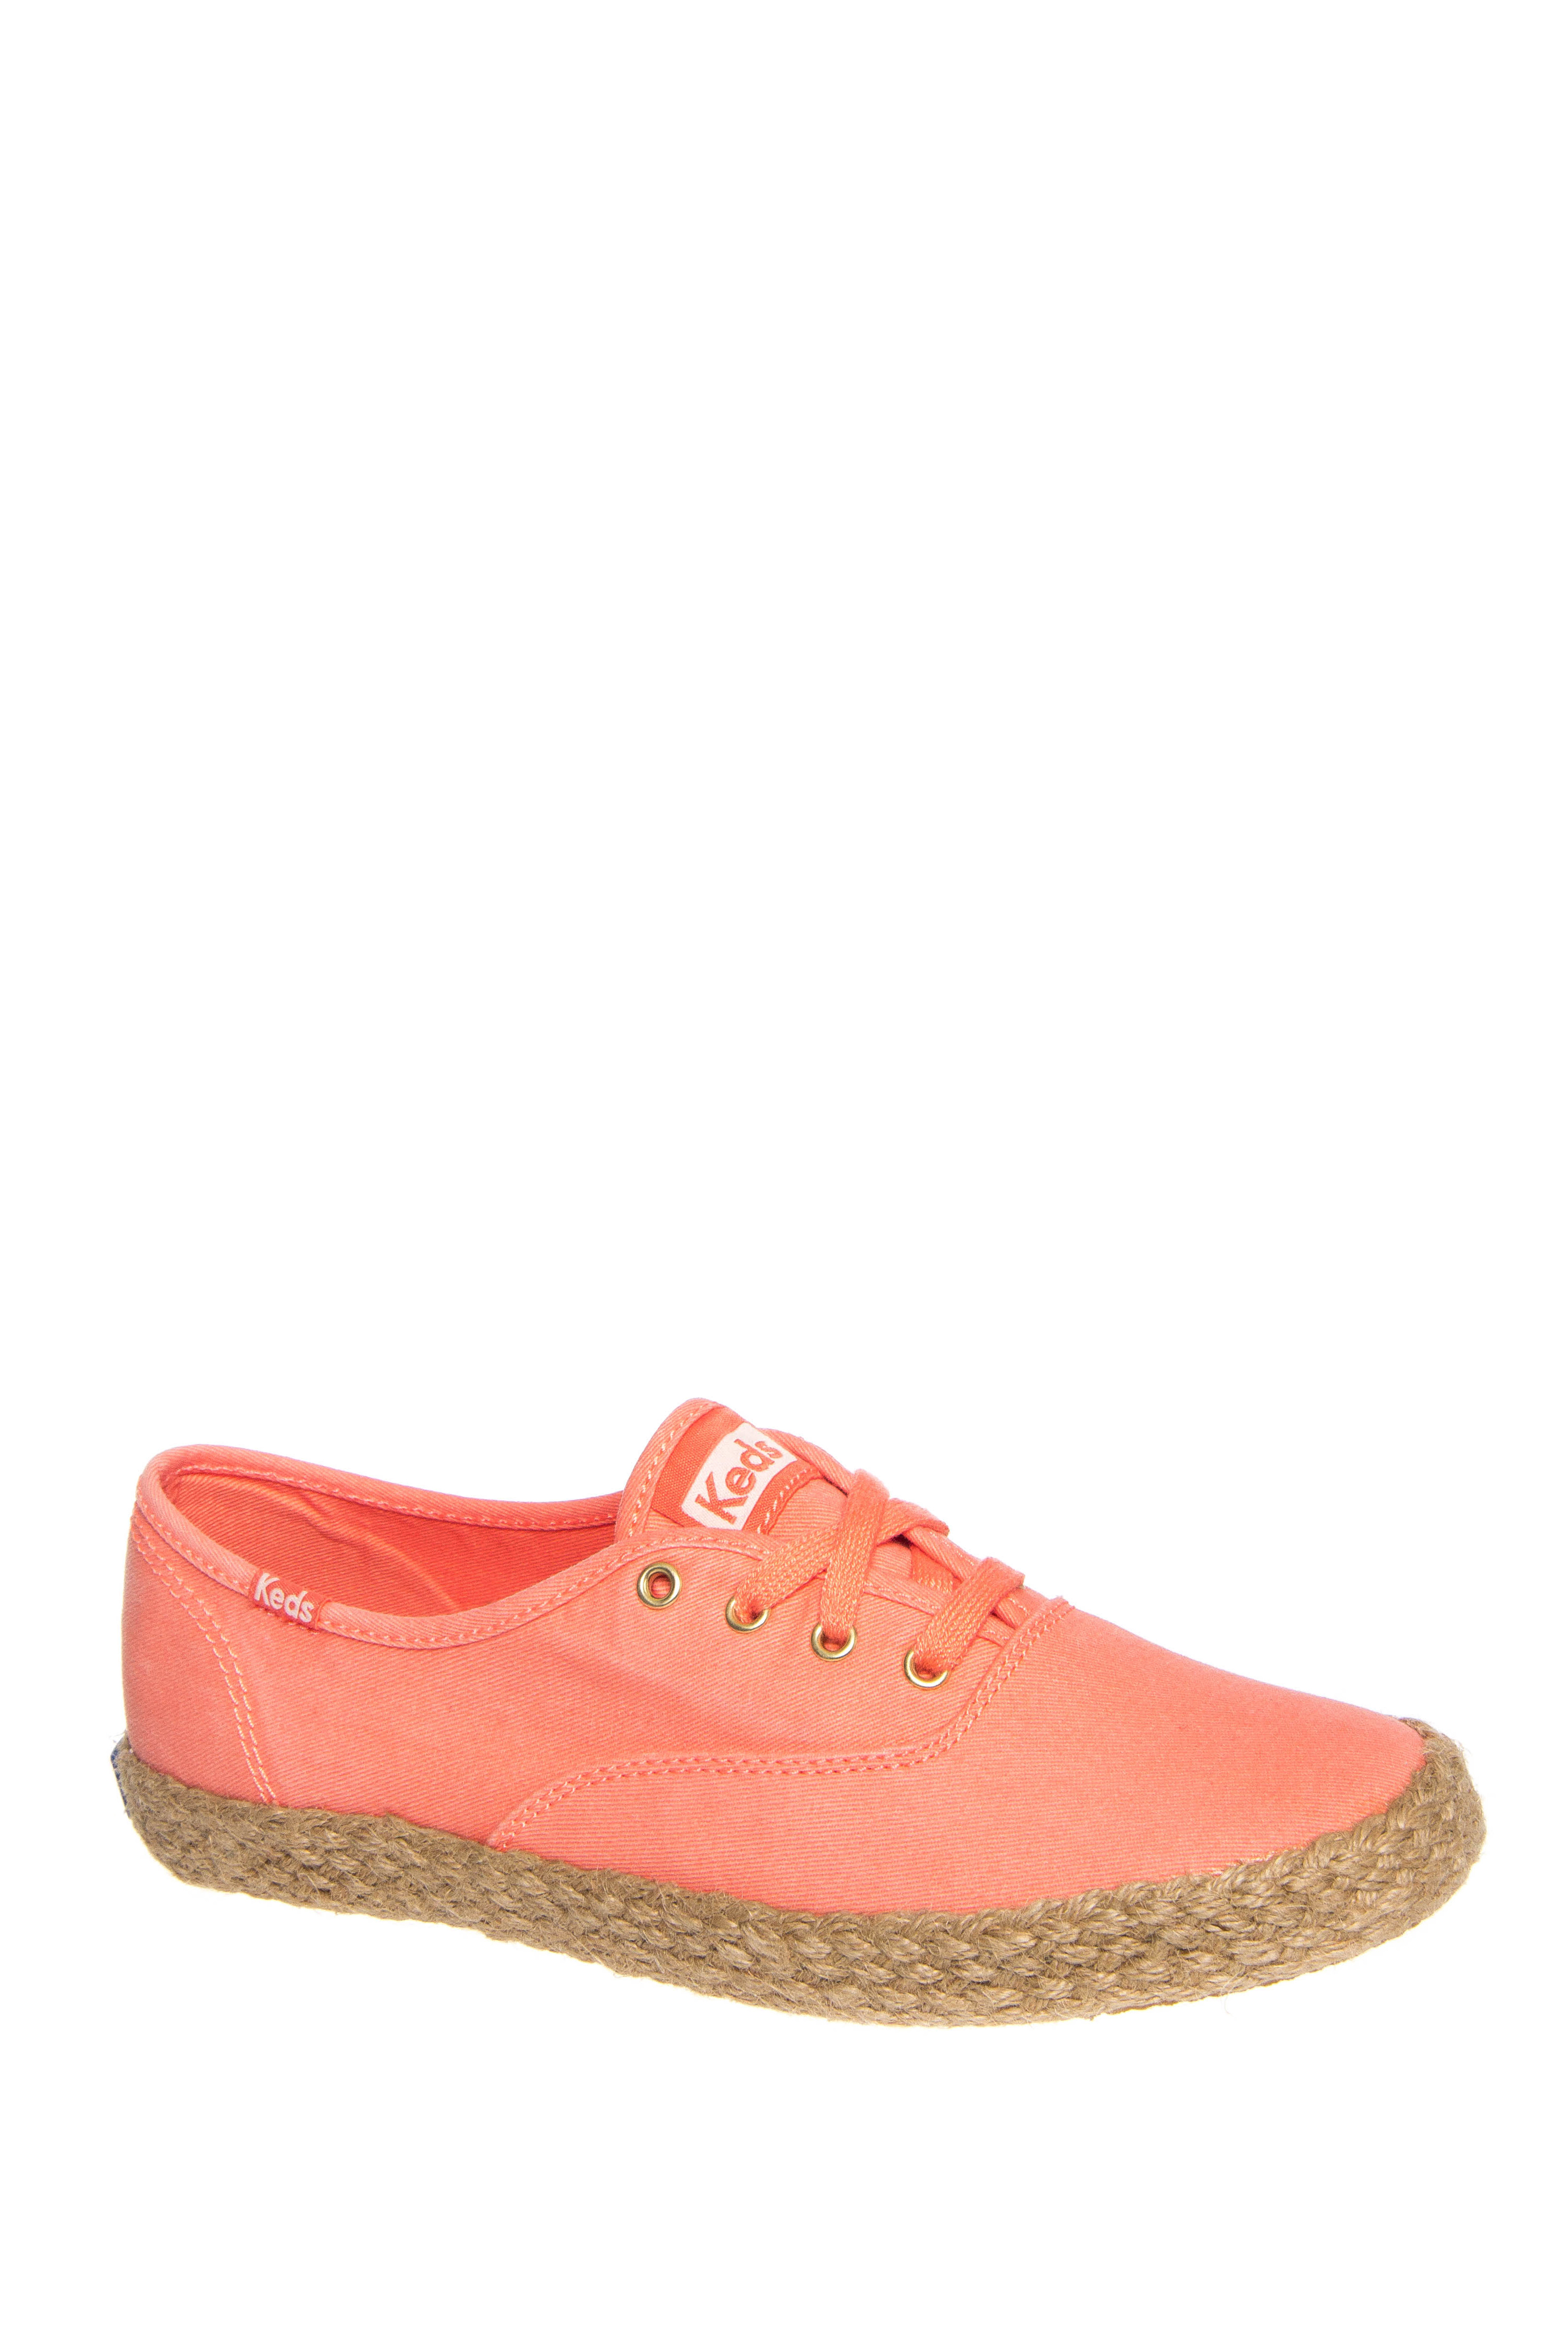 Keds Champion Washed Jute Low Top Sneakers - Coral